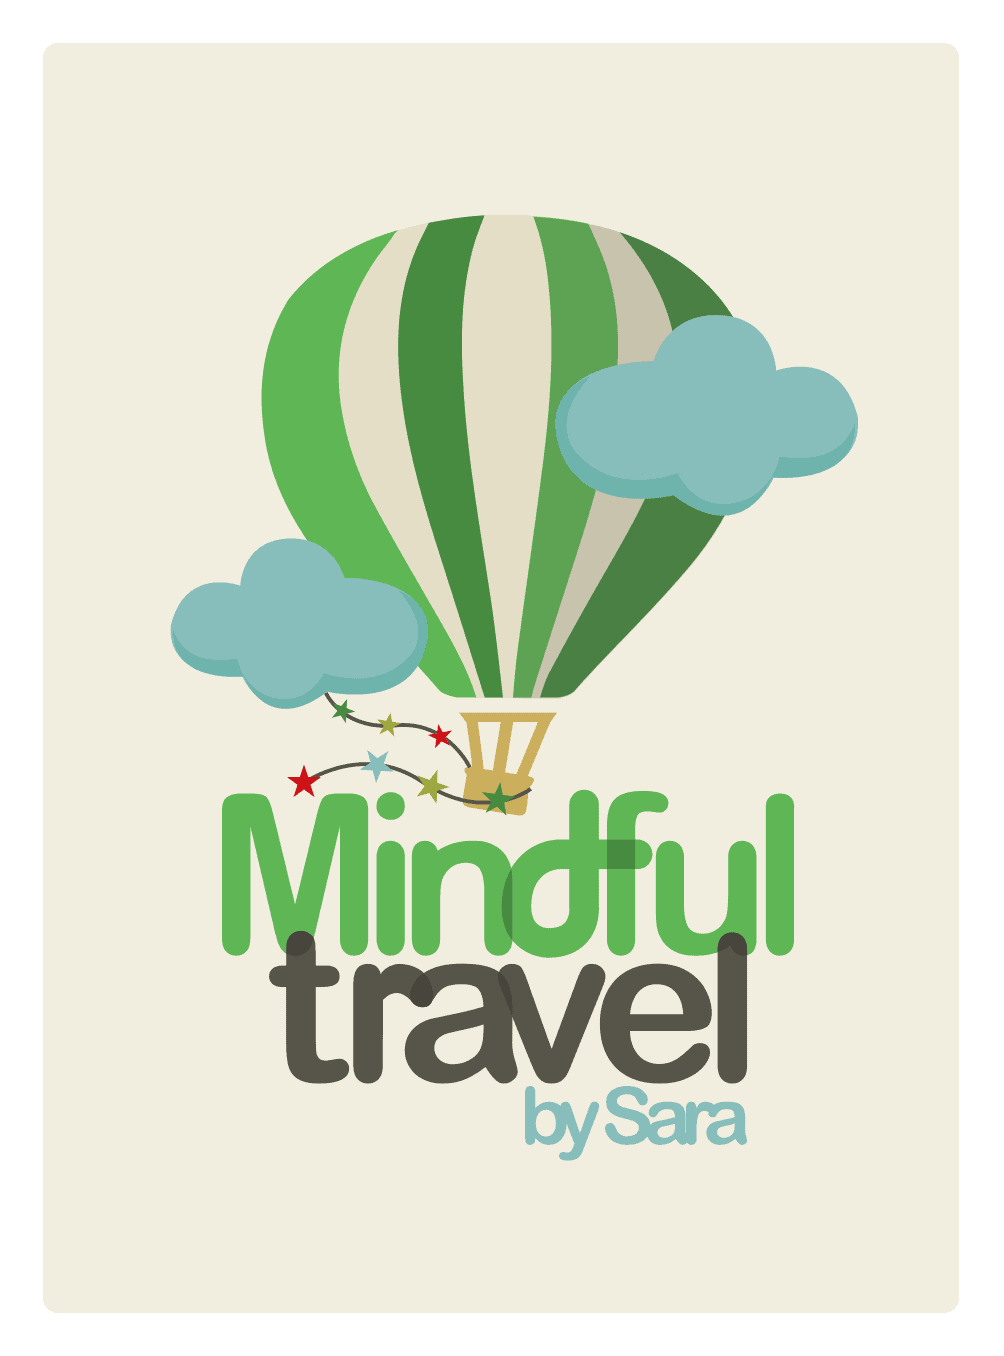 Mindful Travel by Sara